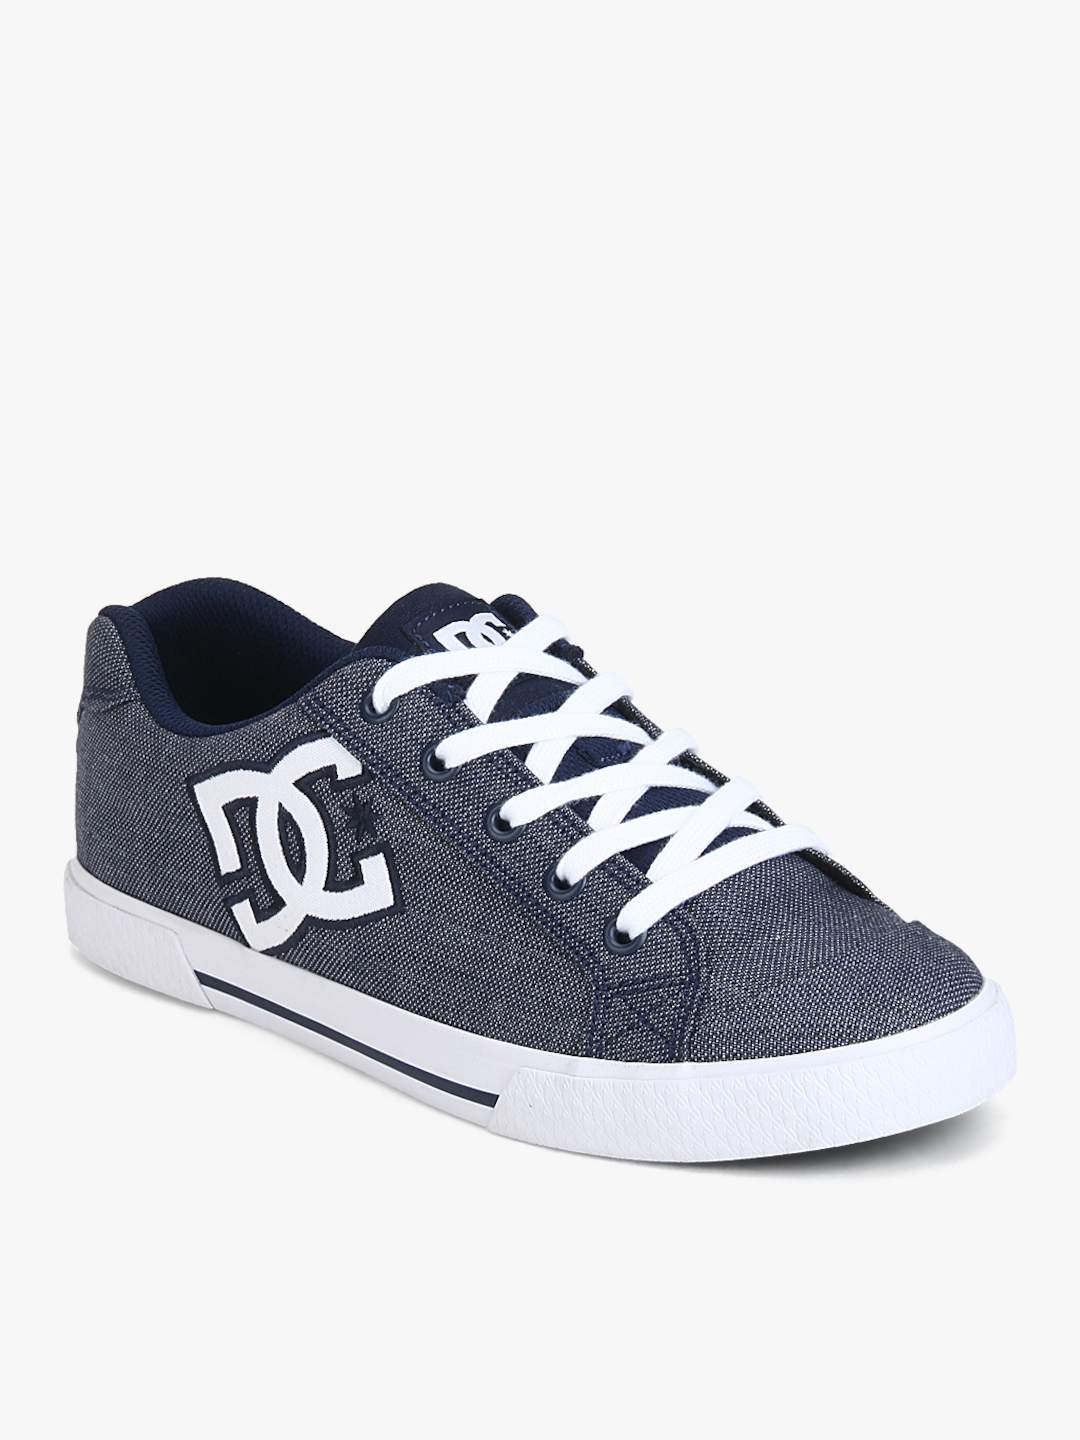 d396961dccc9f Buy Chelsea Tx Se Grey Sneakers - Casual Shoes for Women 7219180 ...